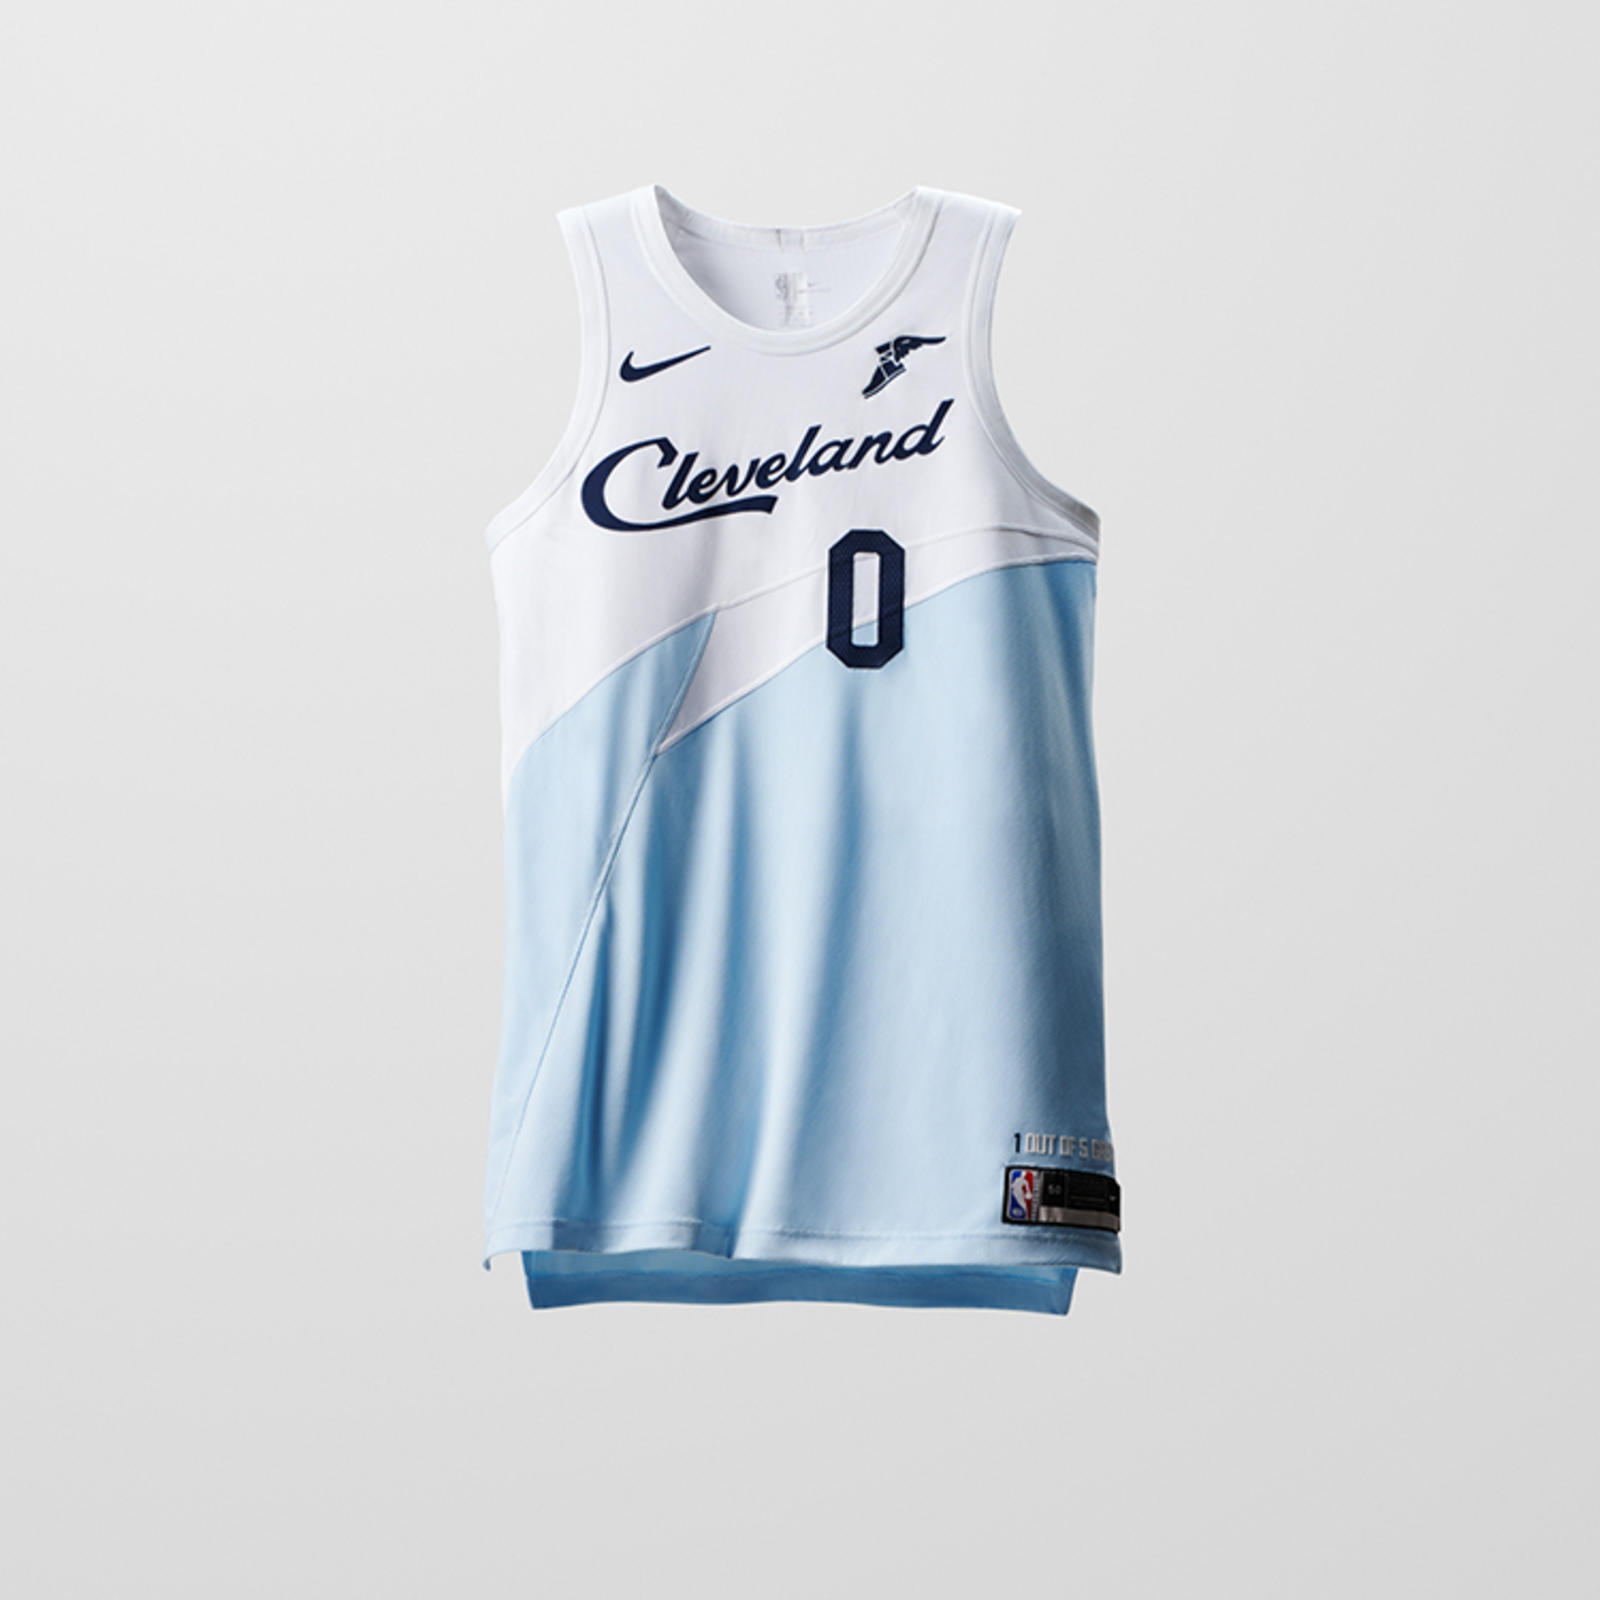 be46174e98d Introducing the Nike x NBA EARNED Edition Uniforms 12